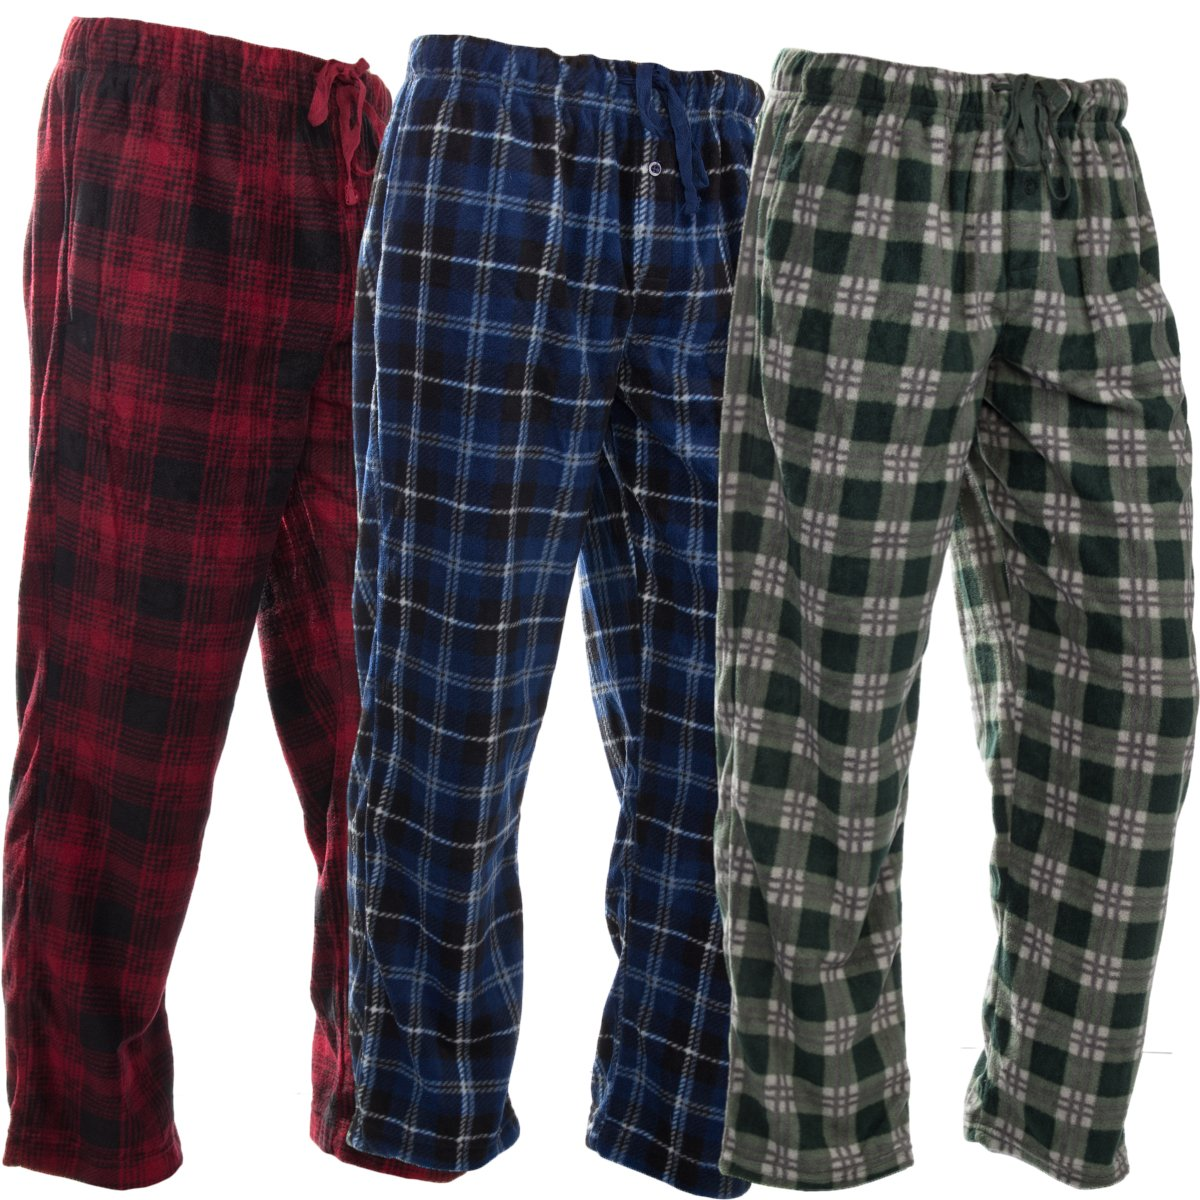 8b65e5a5eb Get Quotations · DG Hill 3 Pairs Mens PJ Pajama Pants Bottoms Fleece Lounge  Sleepwear Plaid PJS with Pockets